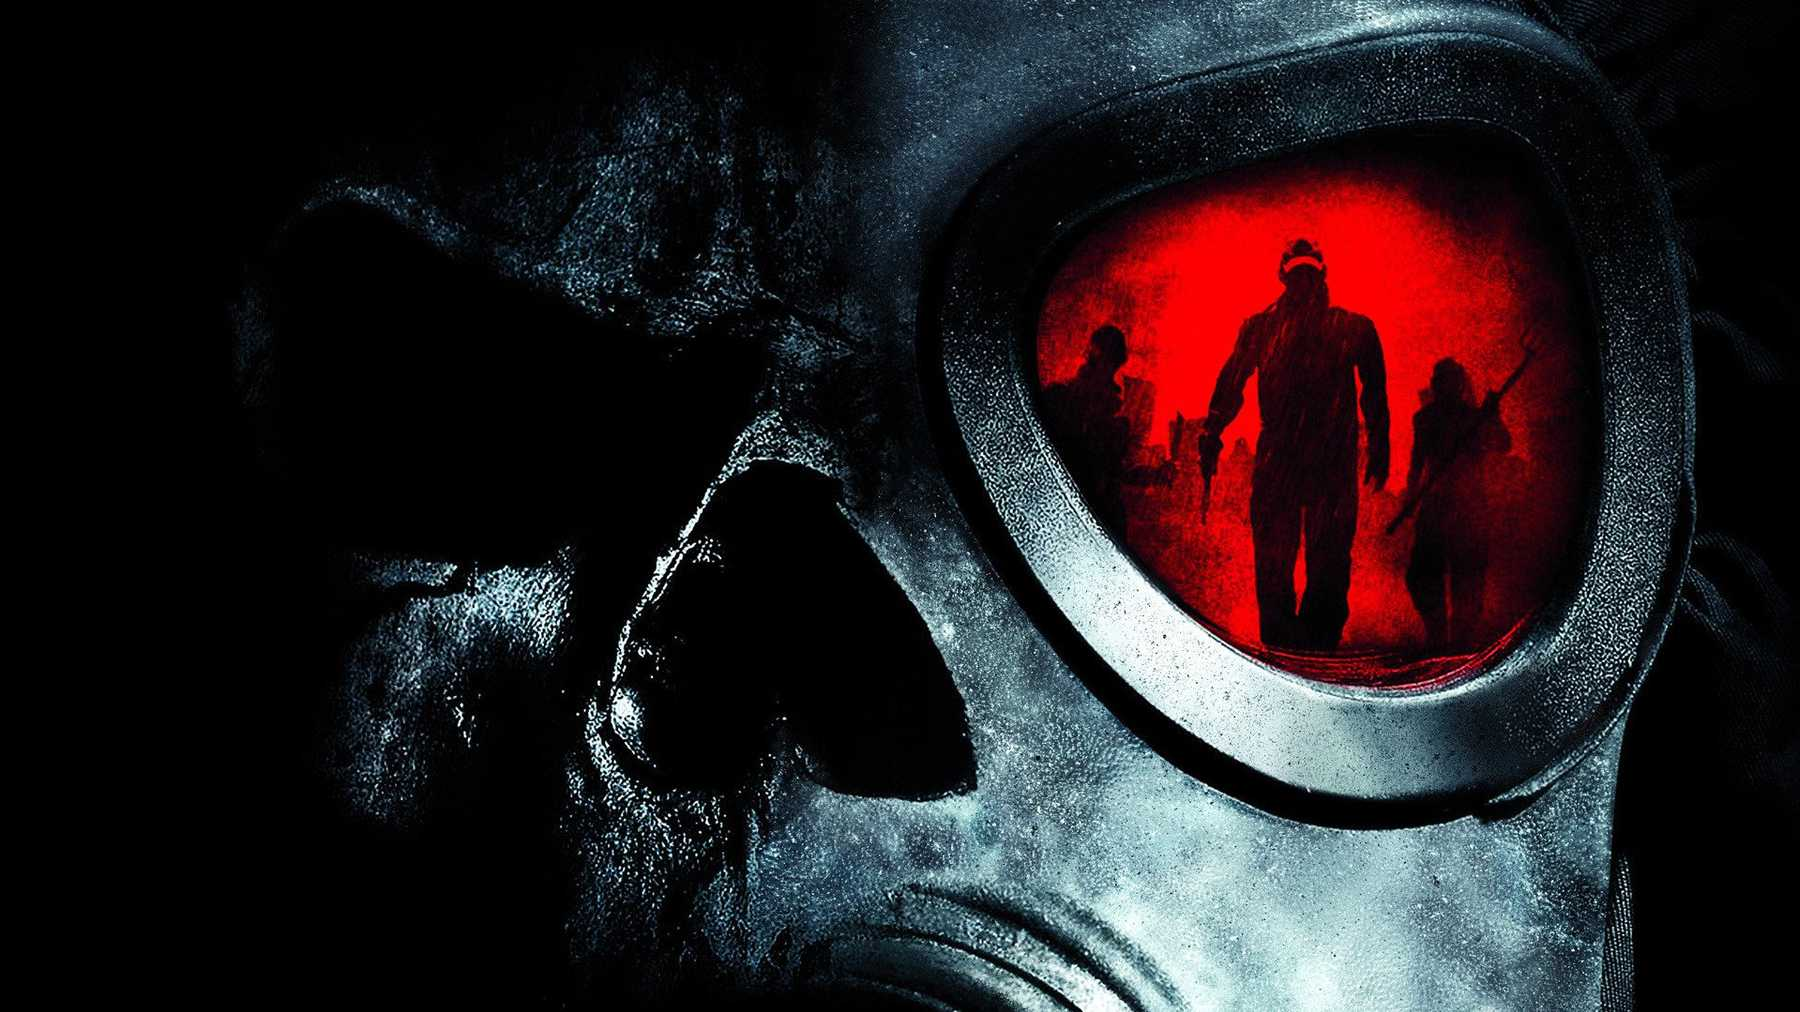 Is It Any Good? The Crazies (2010)